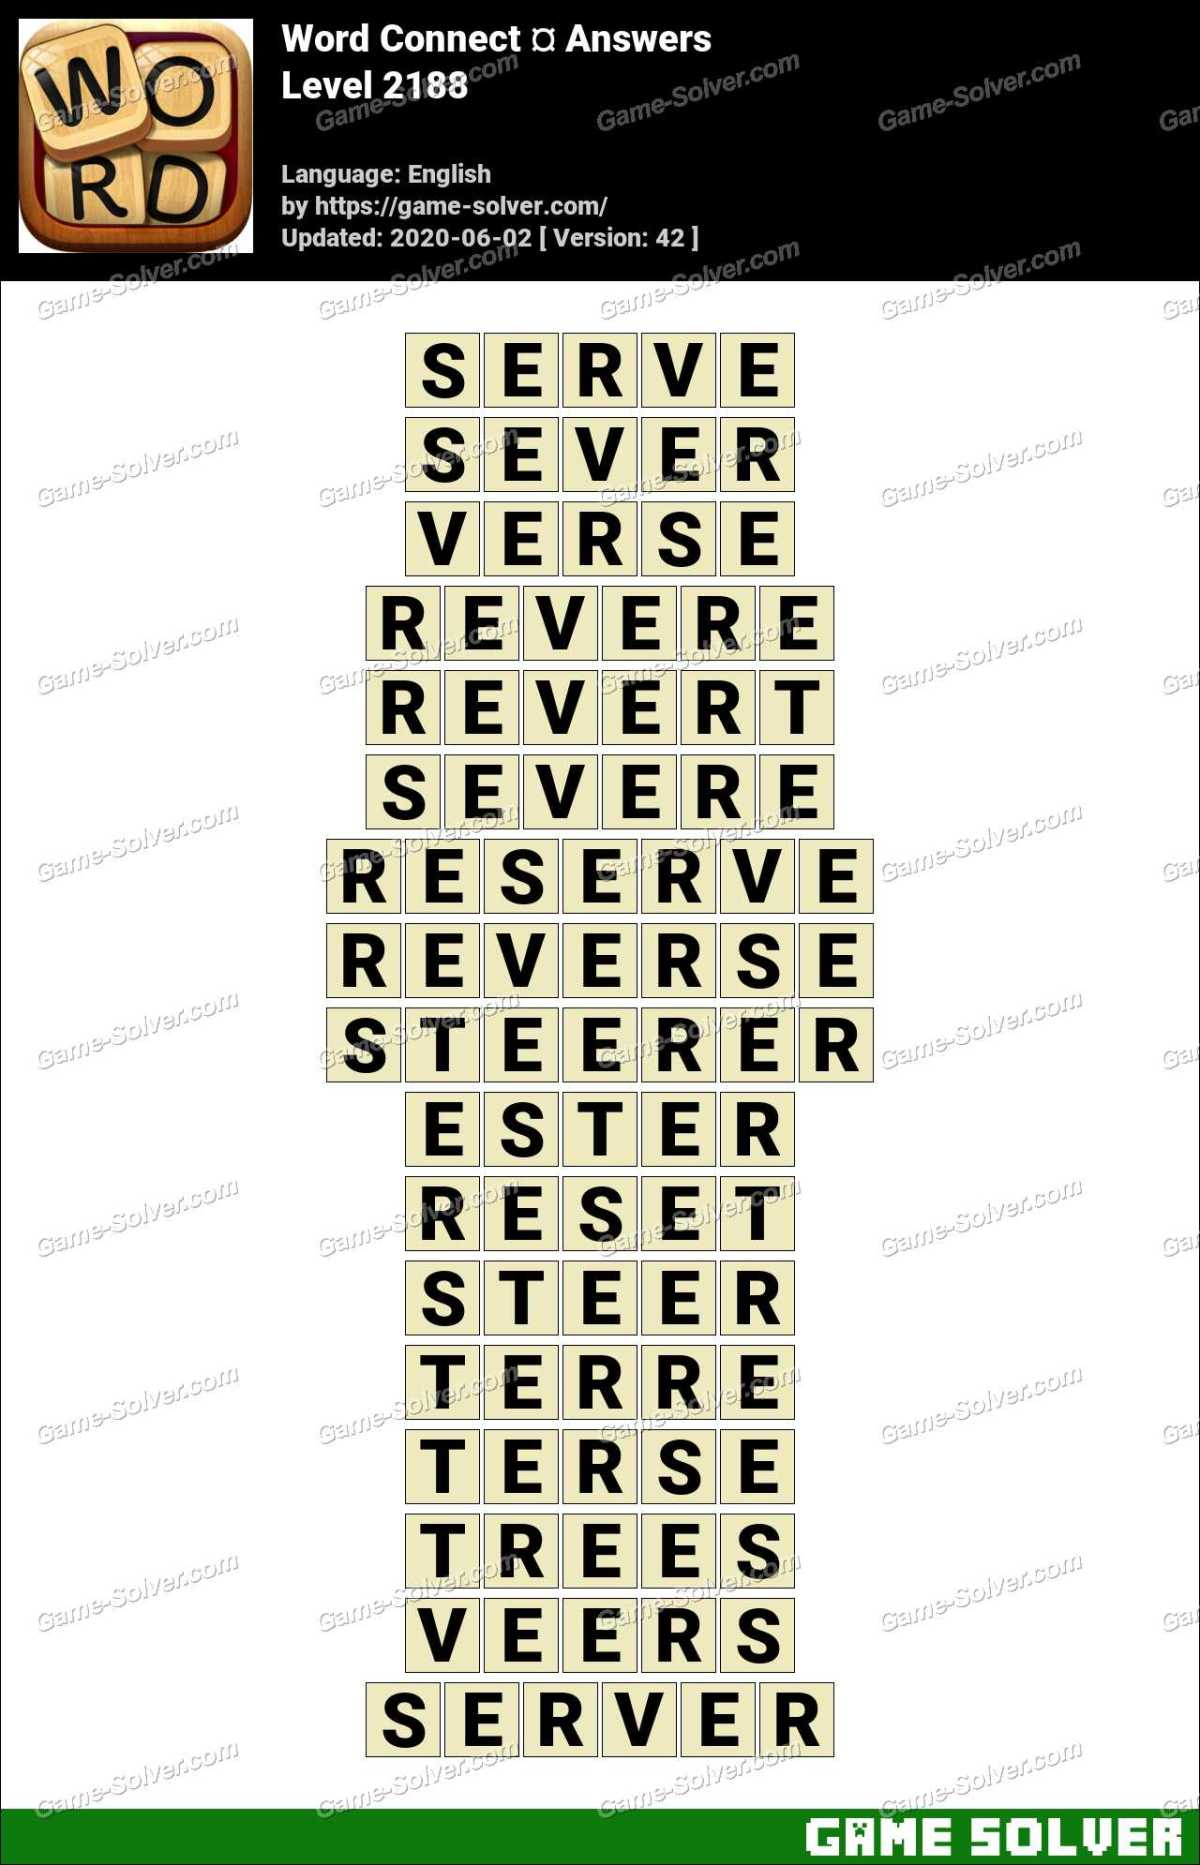 Word Connect Level 2188 Answers